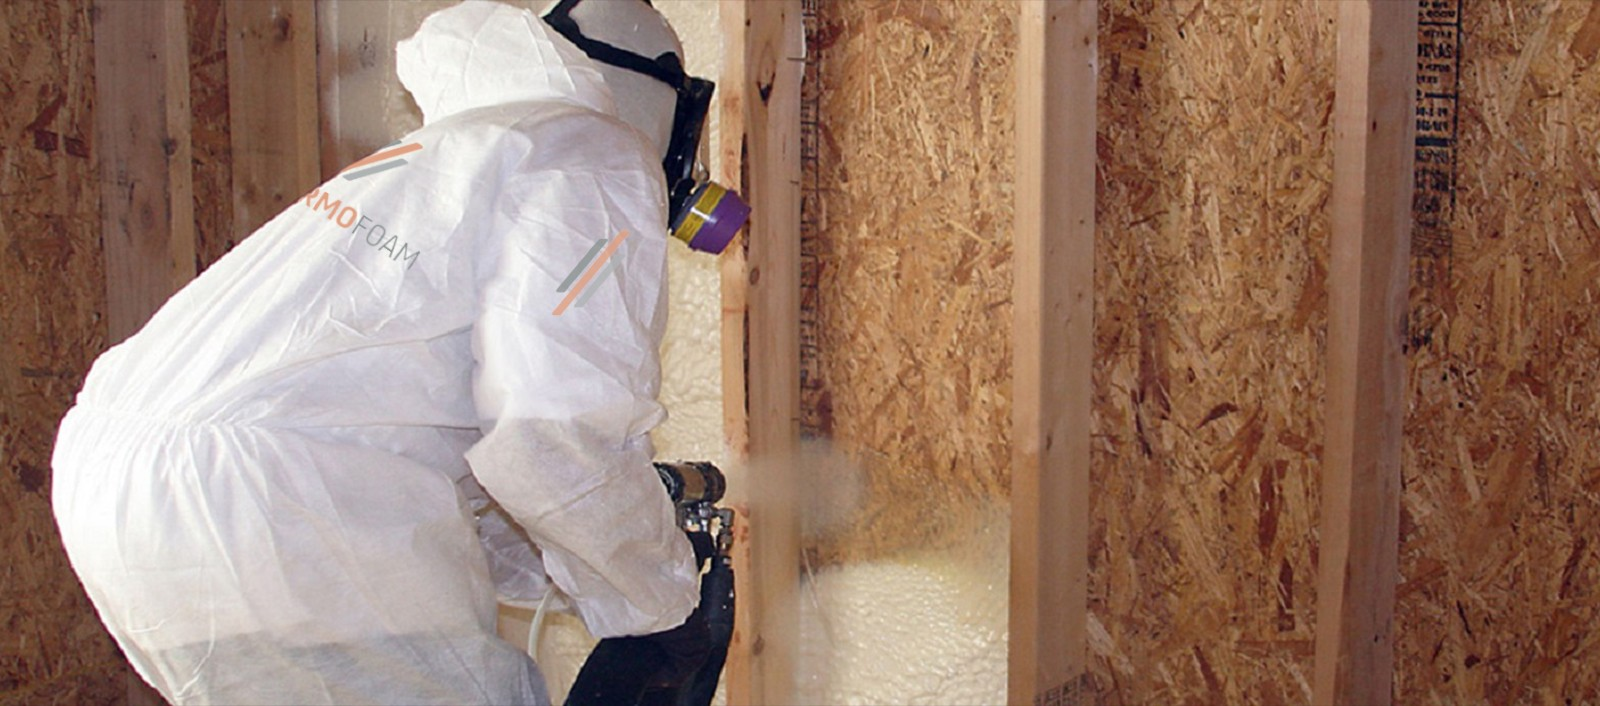 spray foam insulation machine